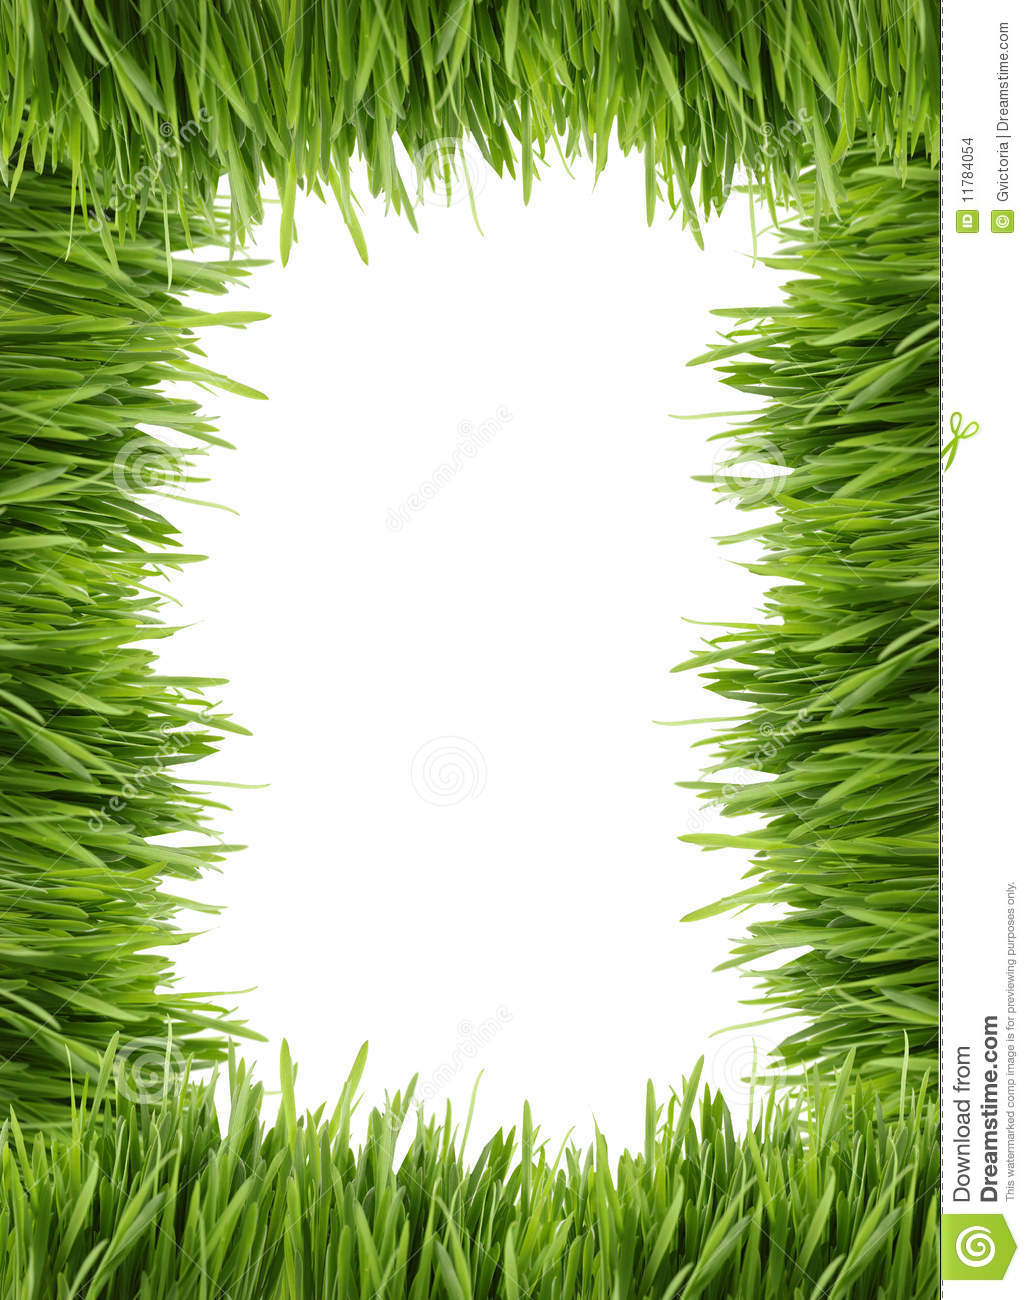 Tall grass border or frame stock photo image of frames for Best grasses for borders